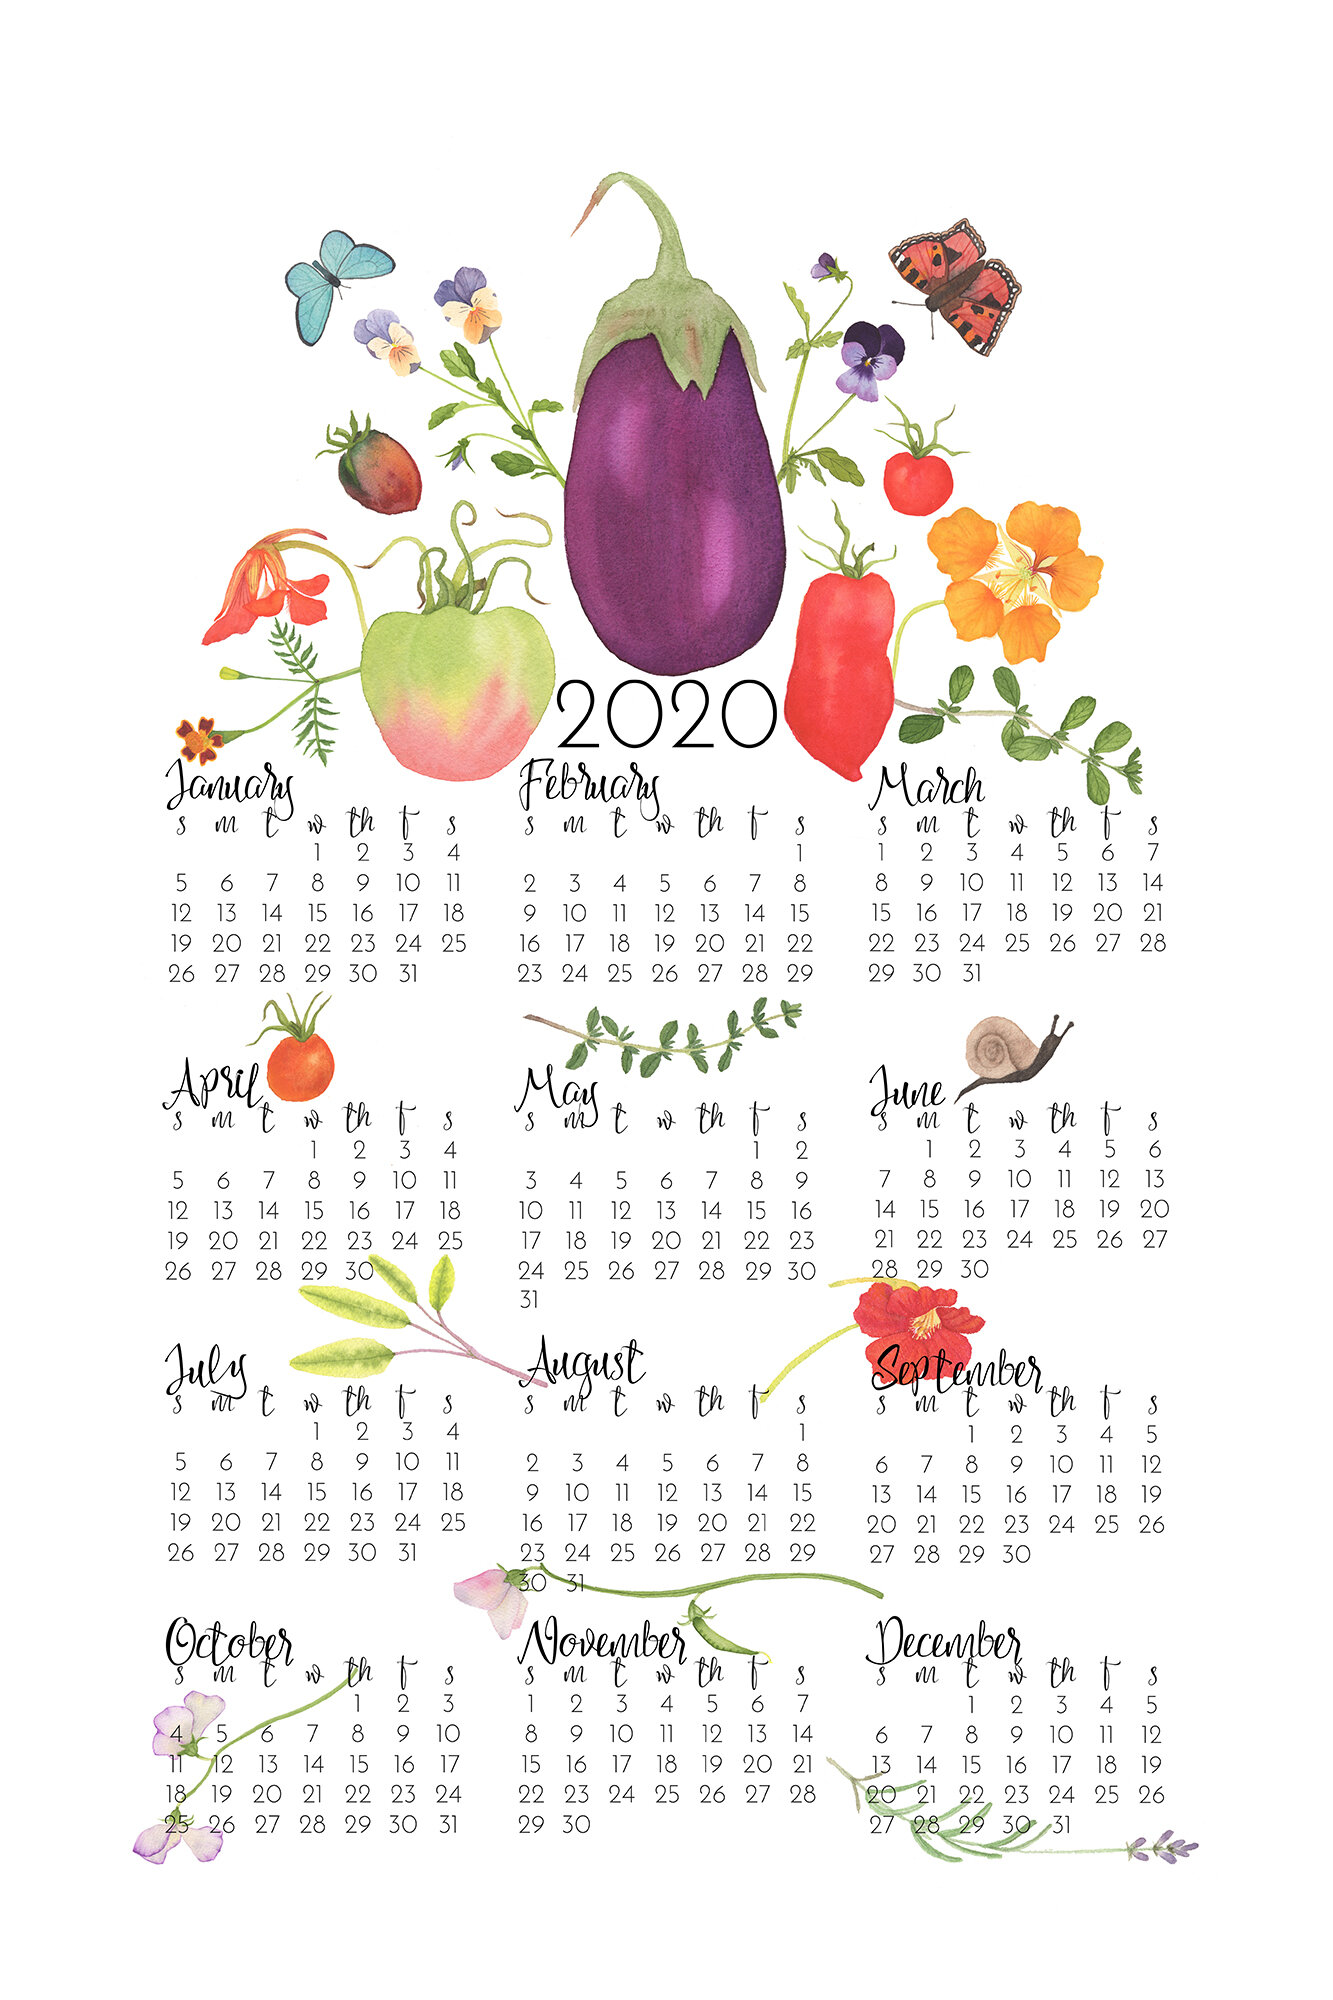 Anne Butera's Kitchen Garden Tea Towel Calendar for 2020 is available on Spoonflower